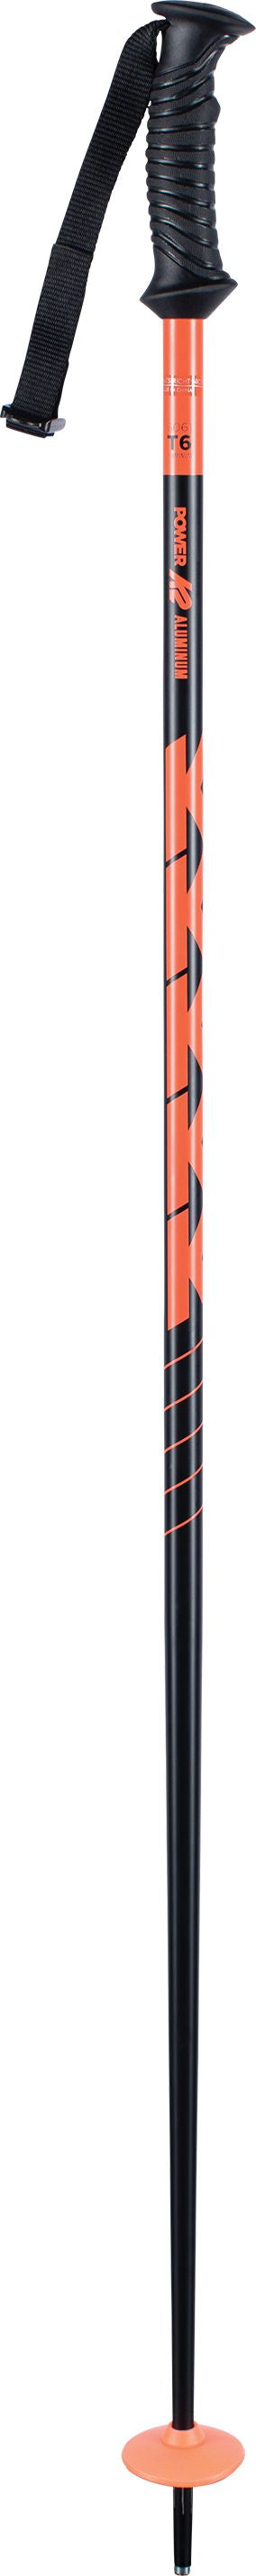 K2 Power Aluminium Ski Poles 2021 - Men's